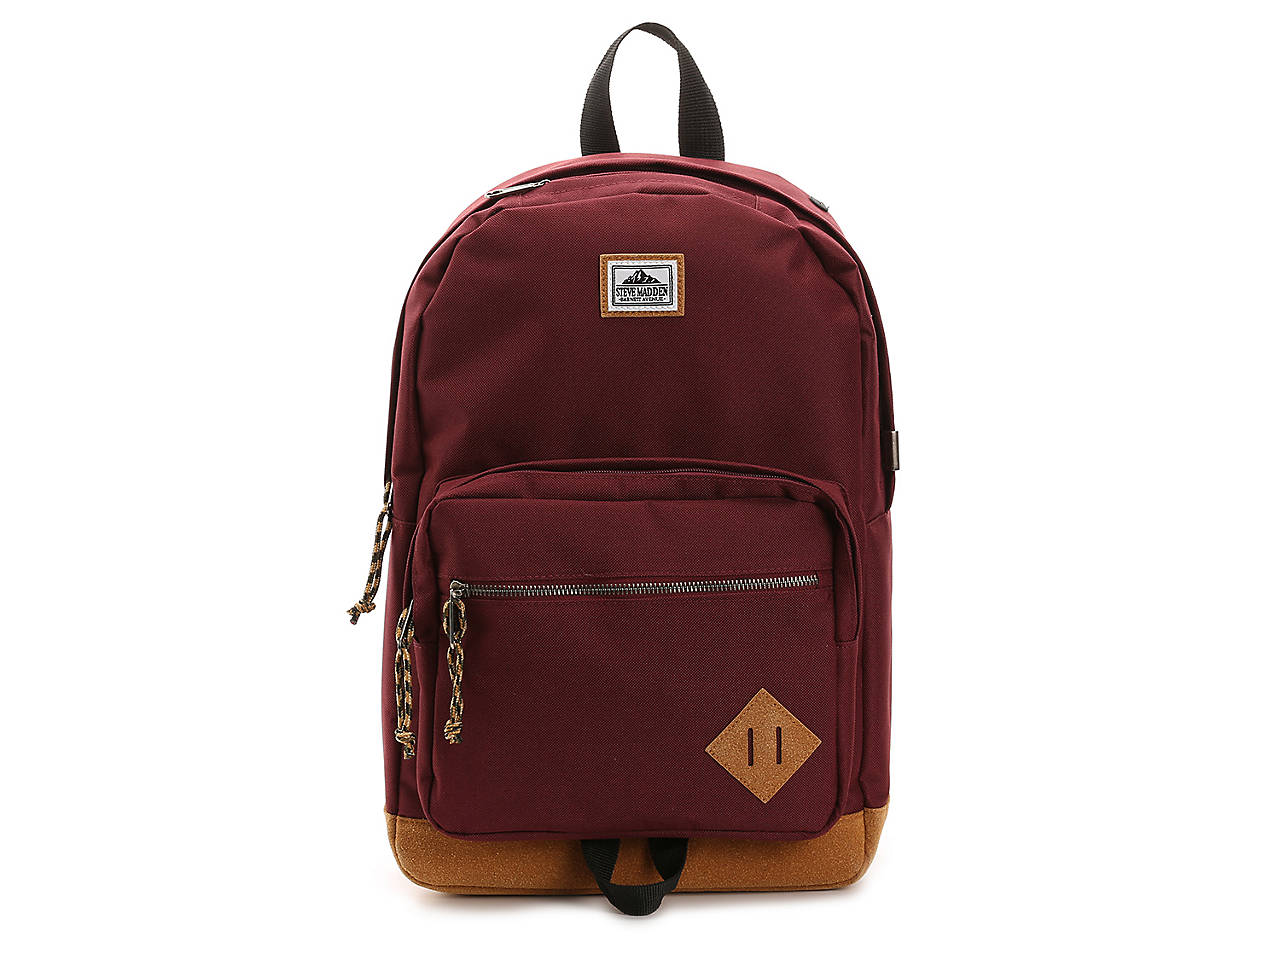 6c46cc6a37 Steve Madden Classic Backpack Men's Handbags & Accessories | DSW